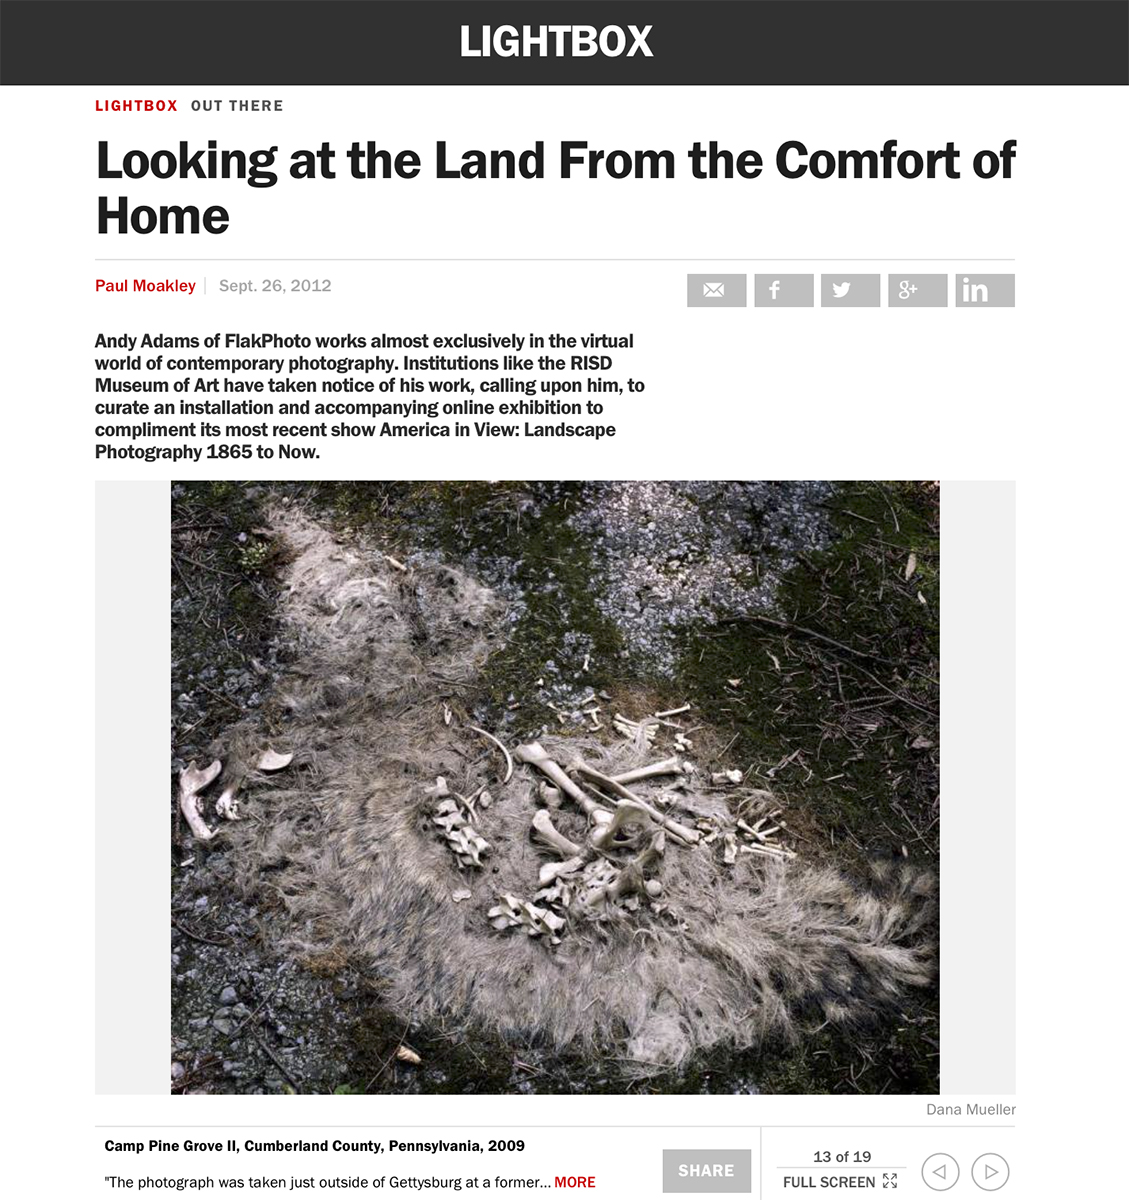 Looking at the Land From the Comfort of HomeBy Paul MoakleyInterview with Andy Adams of FlakPhoto